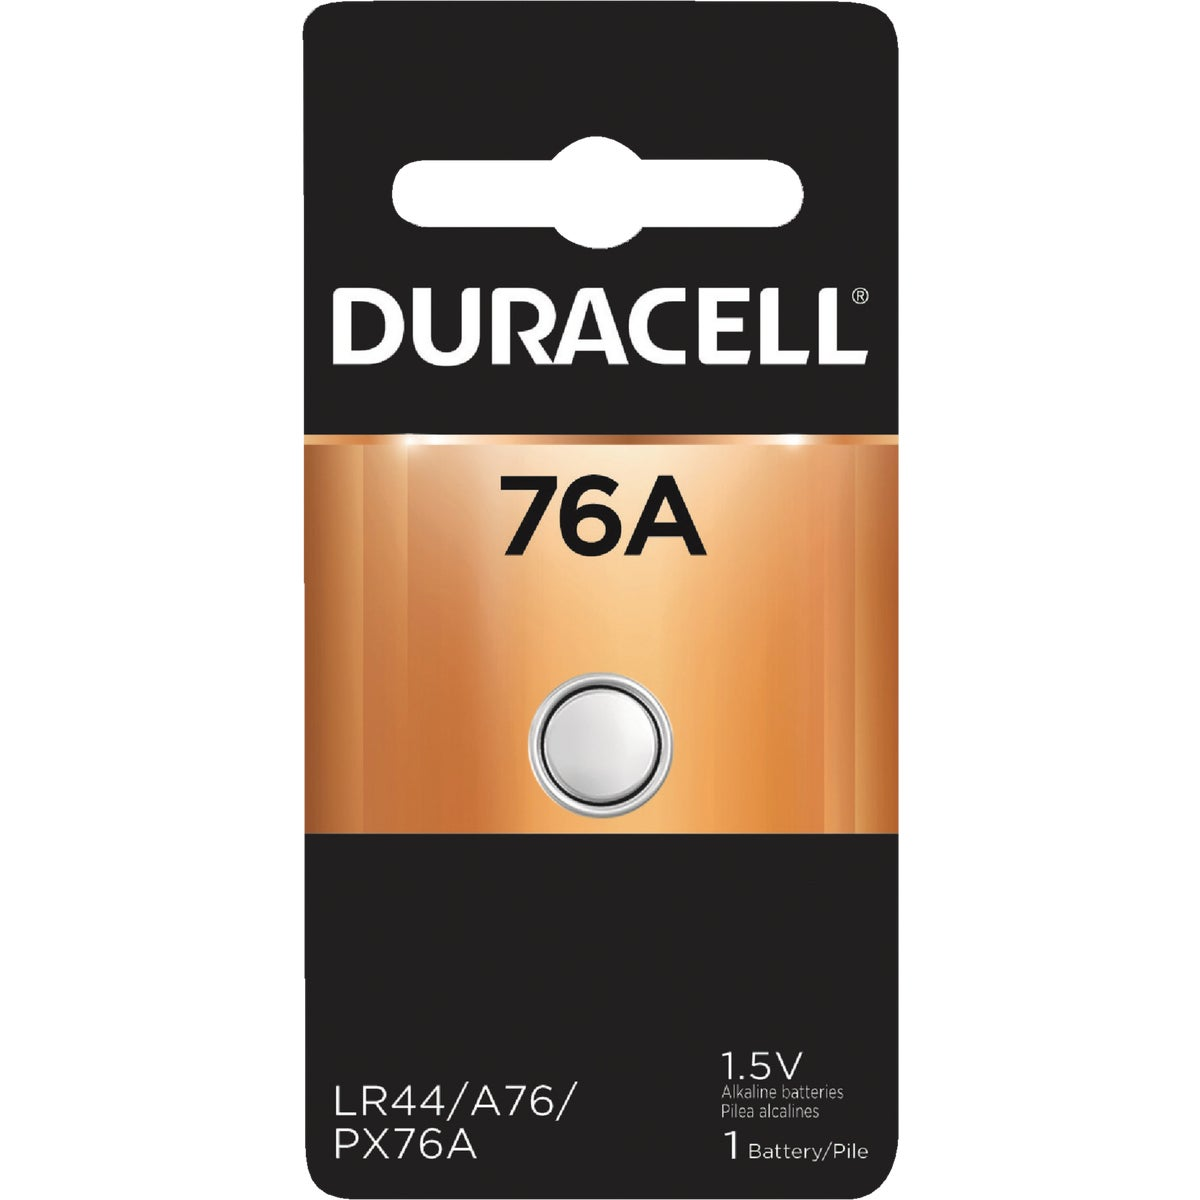 PX76A/675A 1.5V BATTERY - 44887 by P & G  Duracell